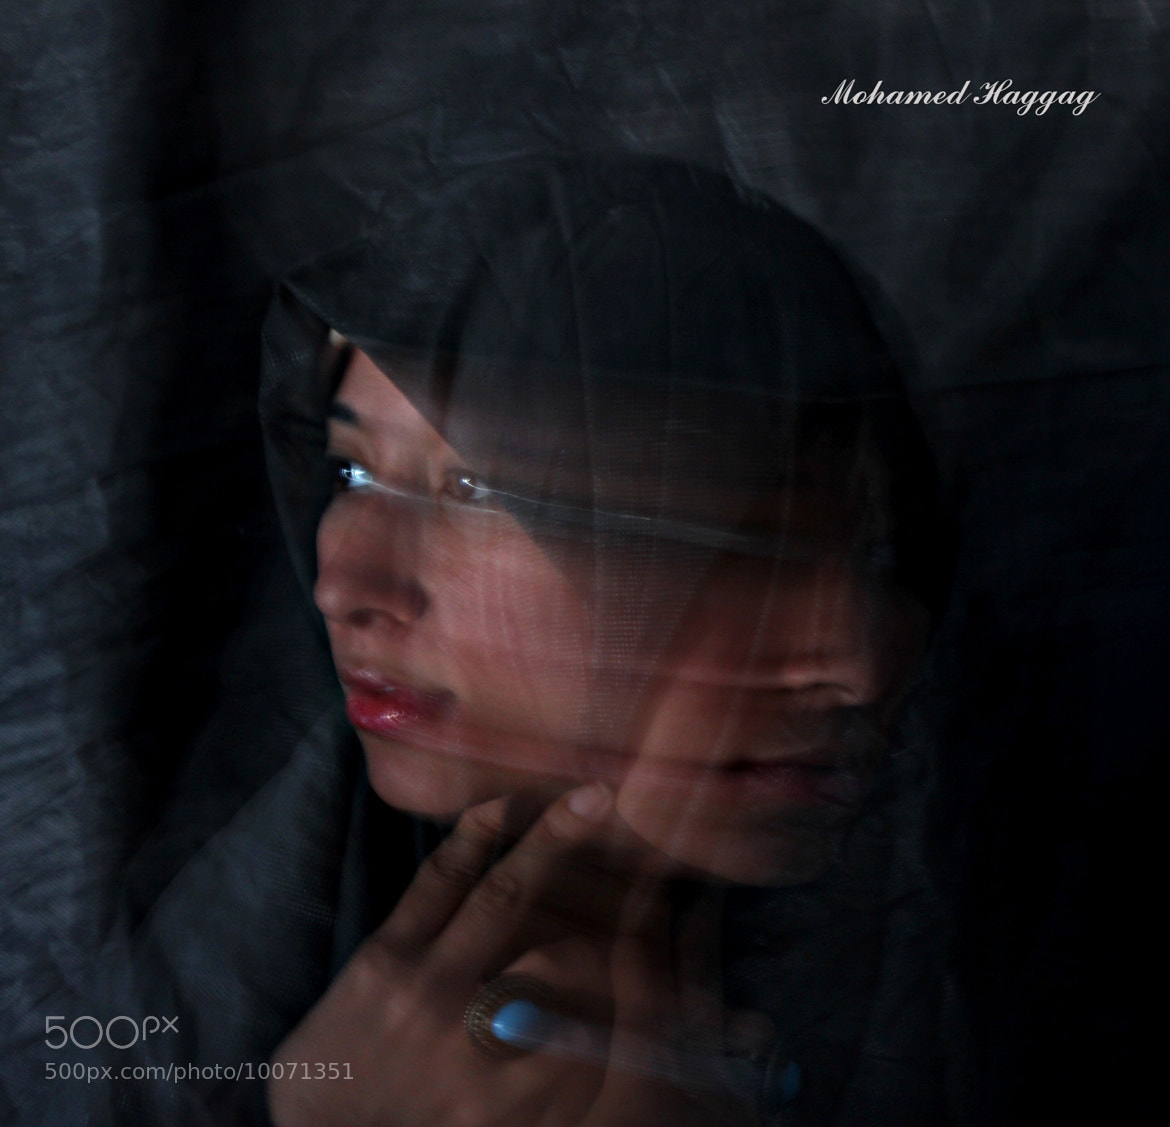 Photograph aya11 by Mohamed  Haggag on 500px